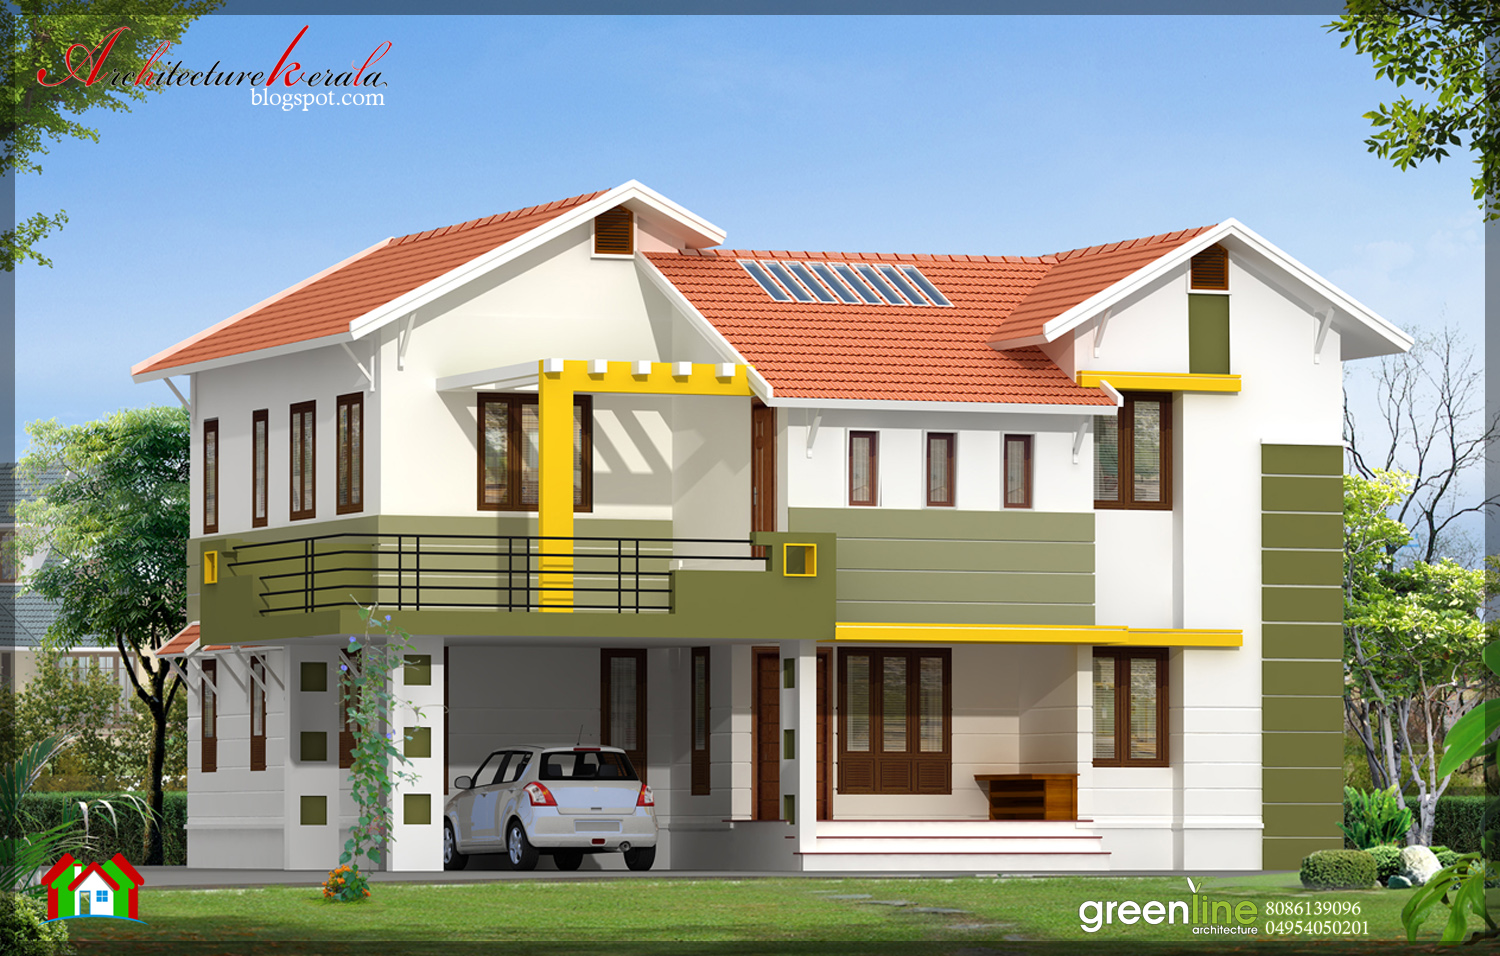 Architecture kerala 4 bhk contemporary style indian home for Simple house designs